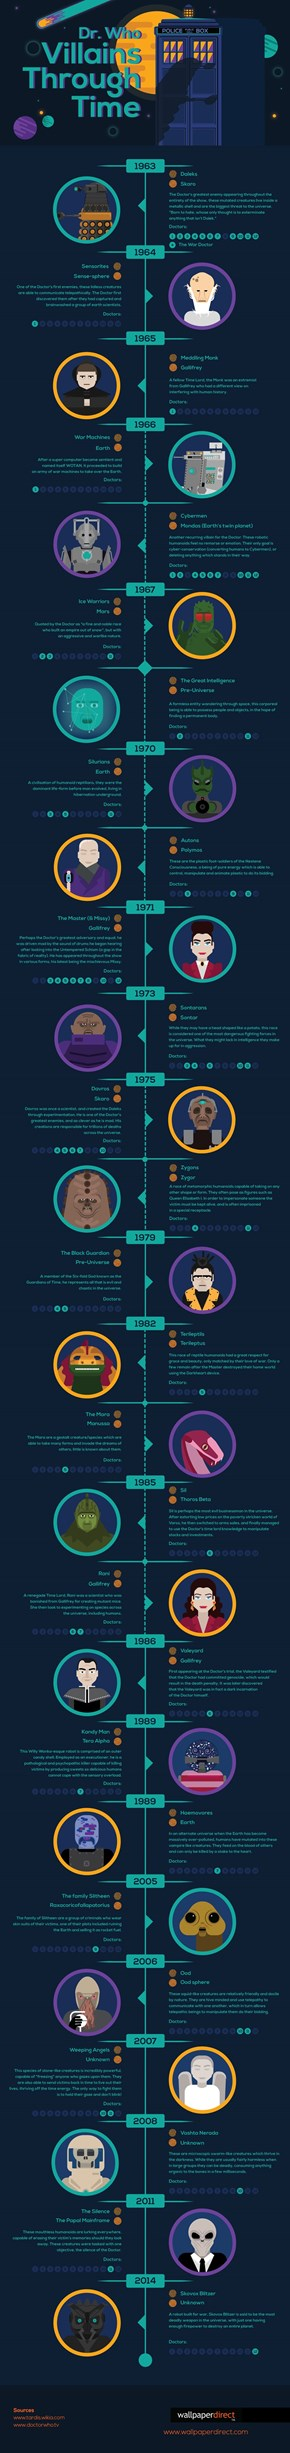 Dr. Who Villains Through Time